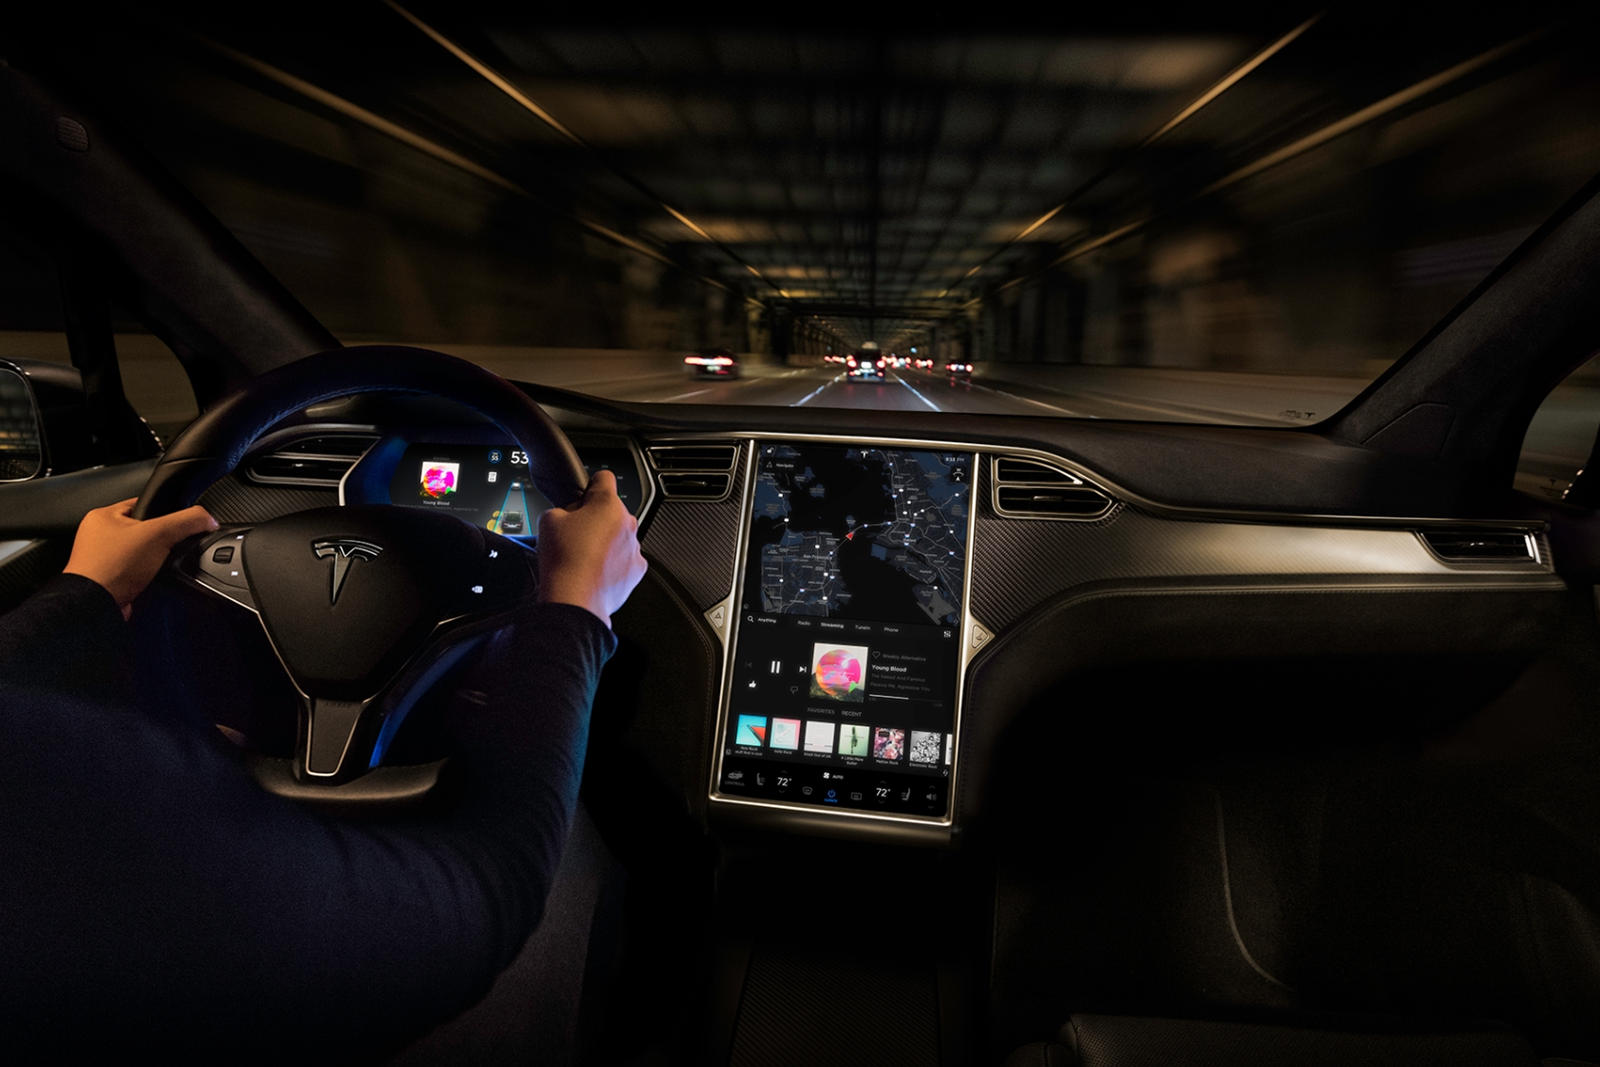 Tesla's Most Controversial Feature Ever Coming Soon